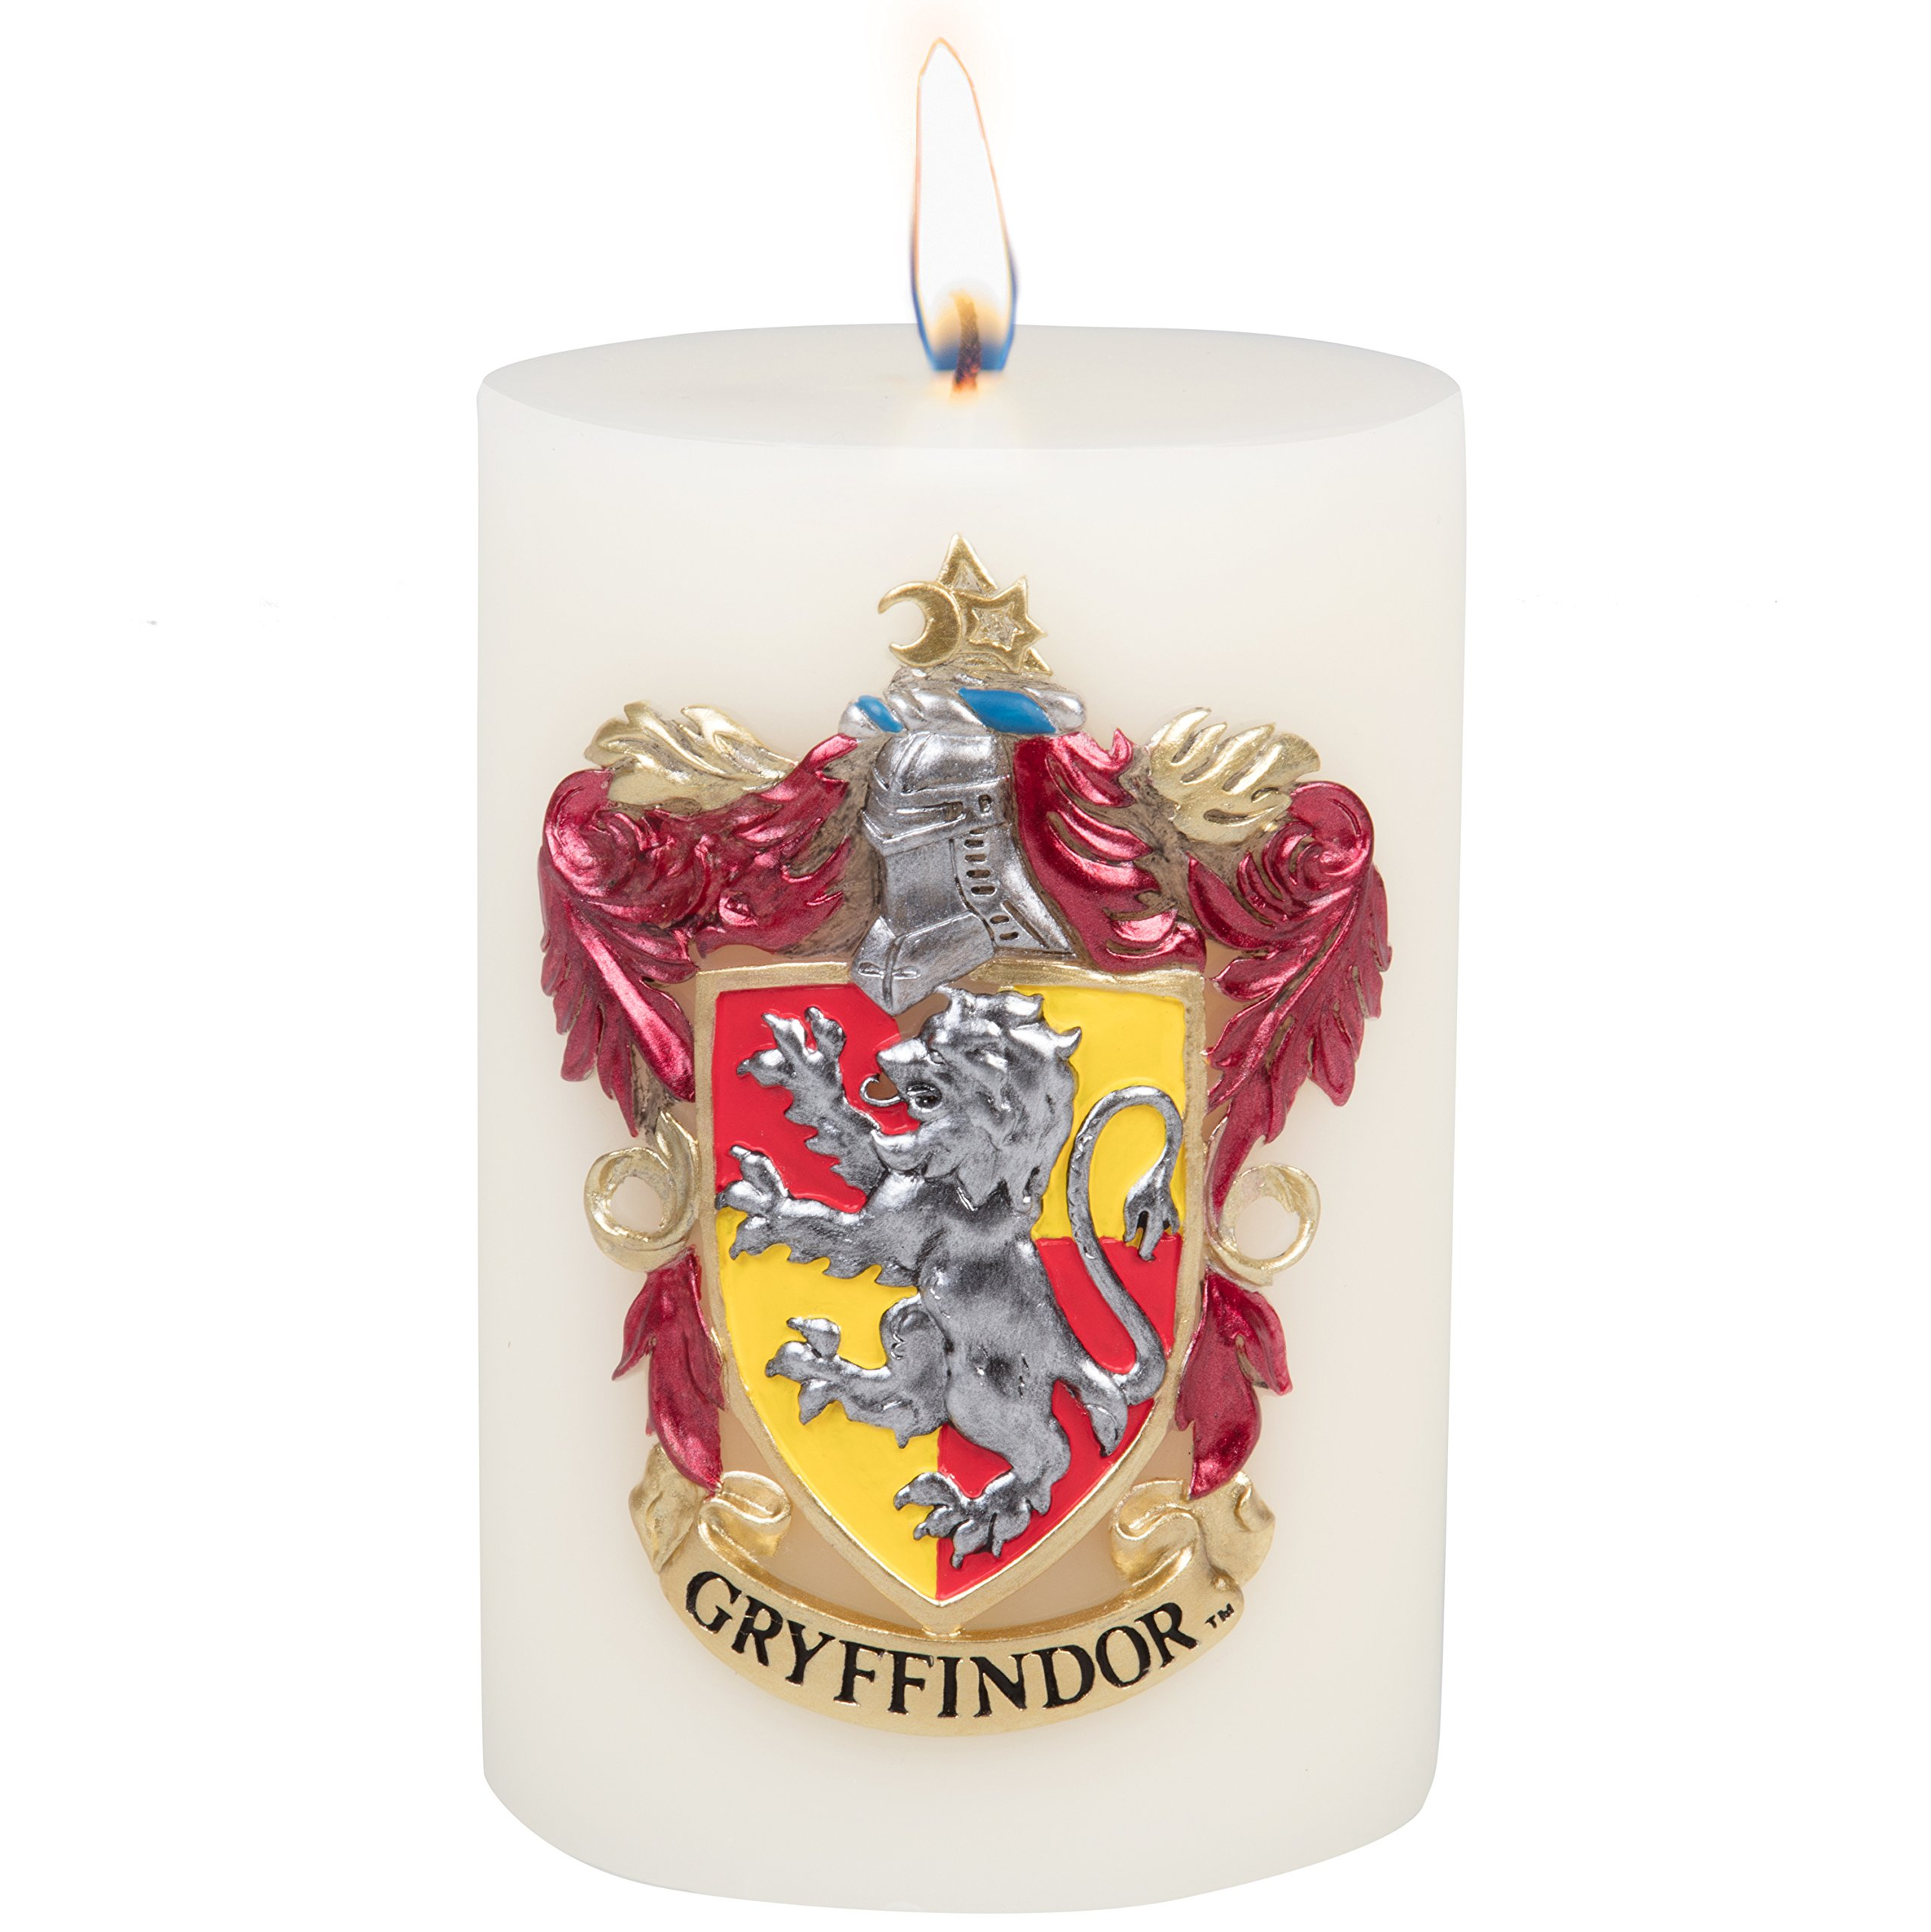 Harry Potter Candle - Gryffindor Insignia Sculpted Wax Pillar Candle - Reusable With 80 Hour Burn Time - Magical Gift For Gryffindor Students & Fans - Unscented - 6''h